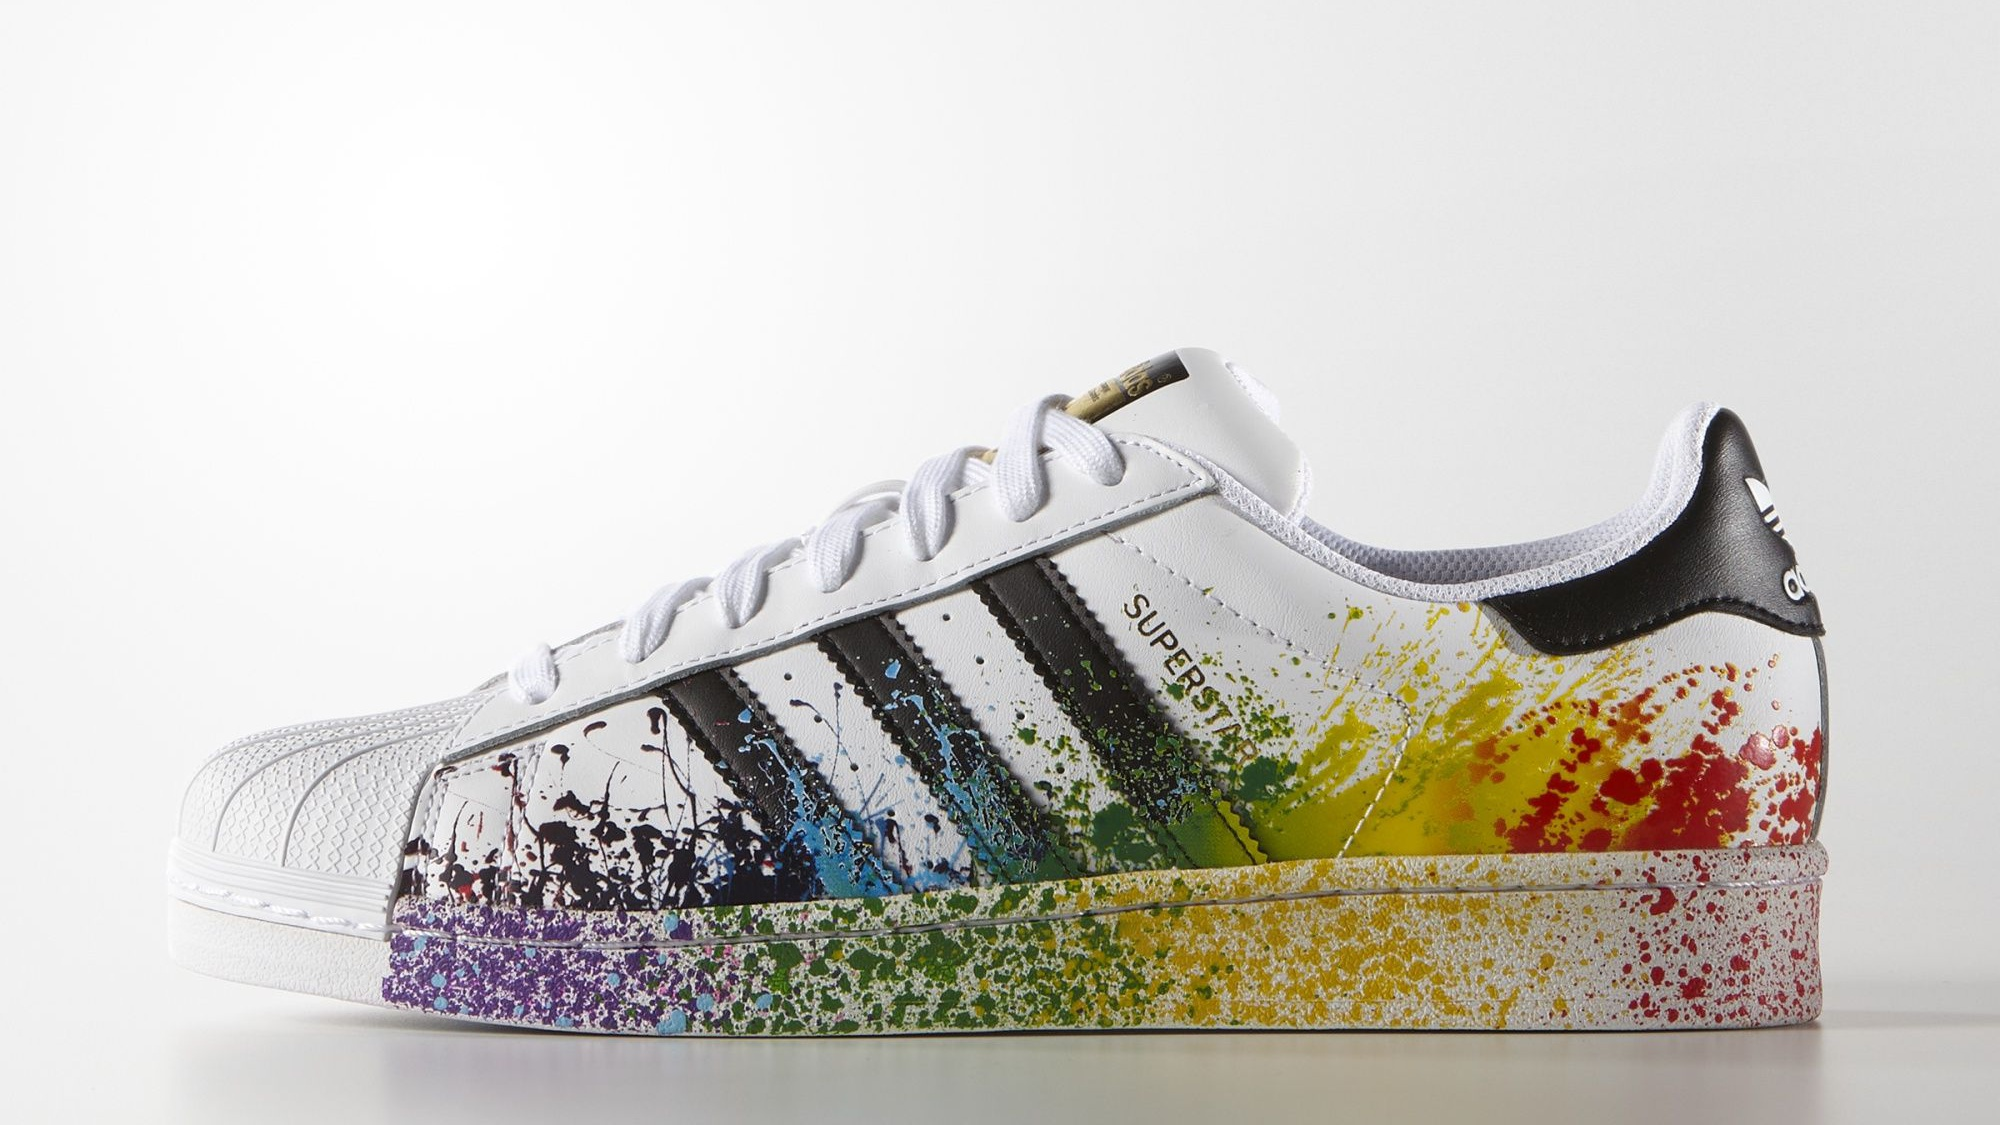 94593fea2890 The spirited sneaker designs inspired by LGBT pride month — Quartz